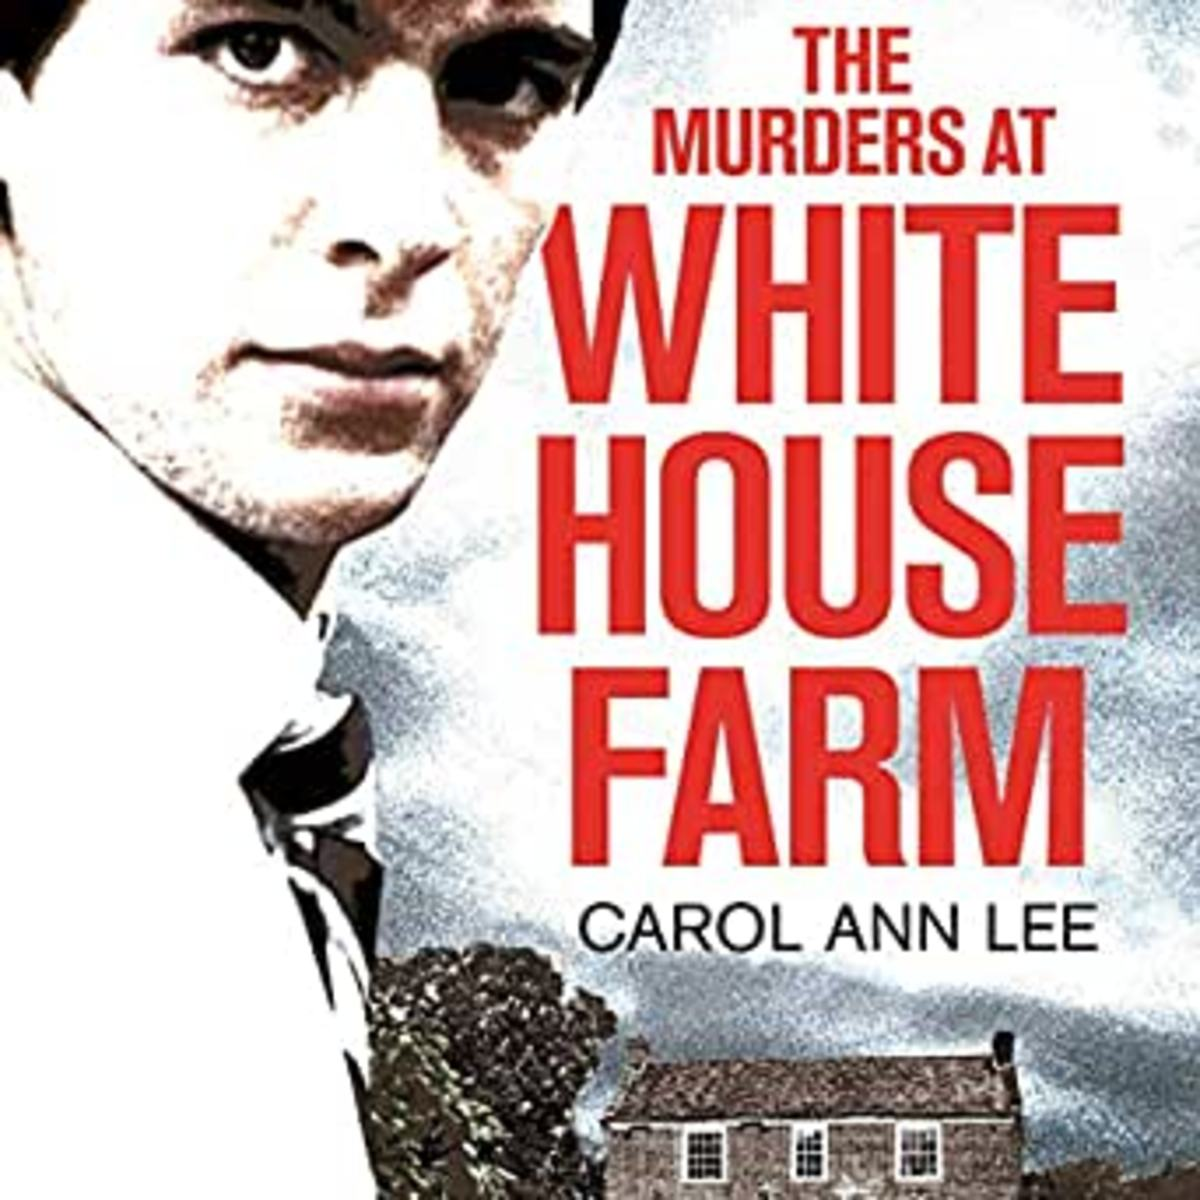 The Murders at White House Farm Book Review